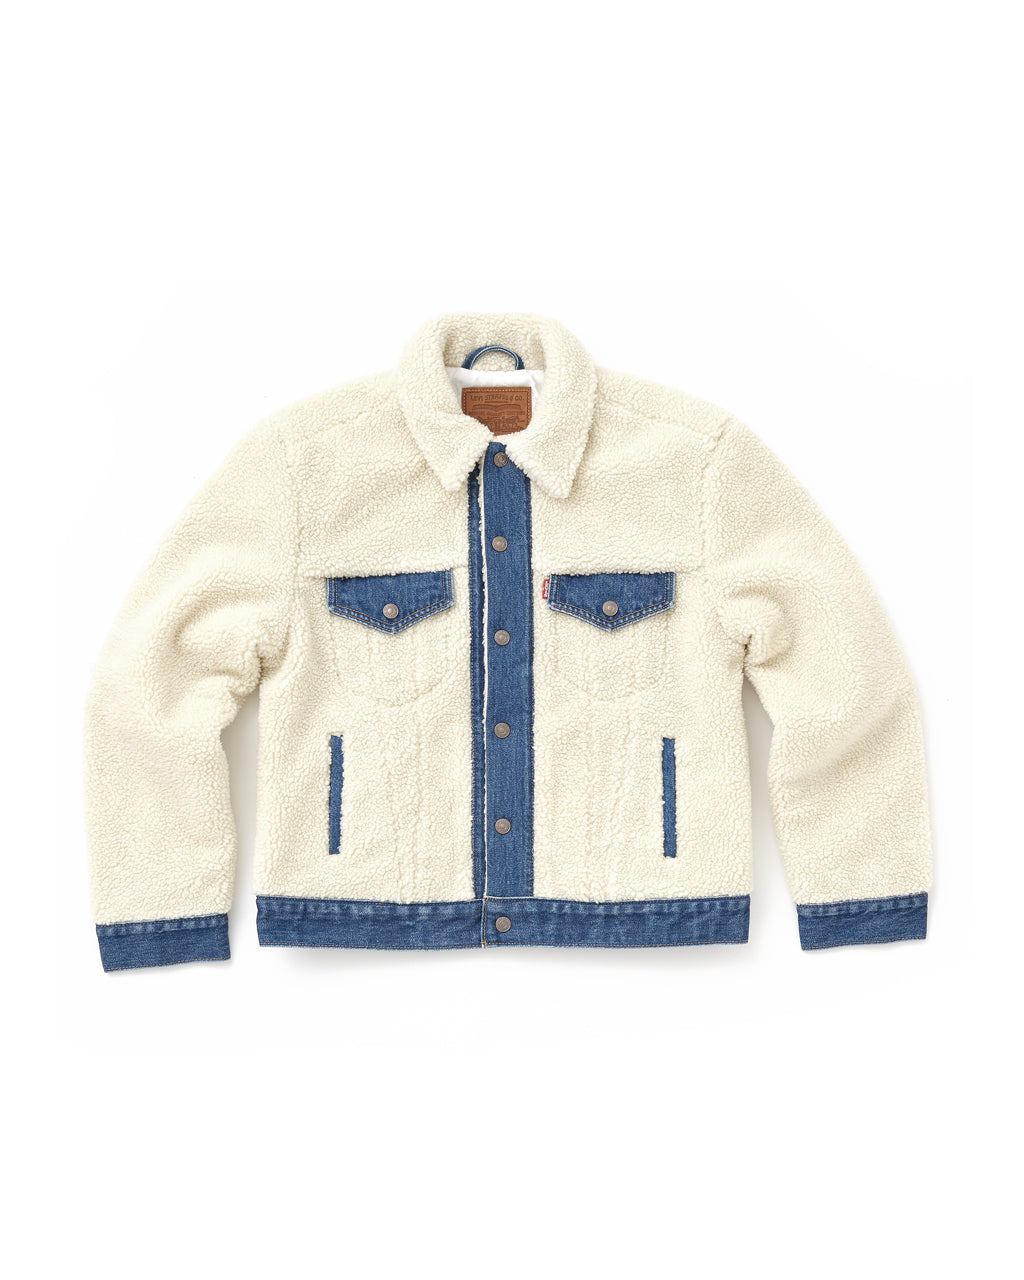 flat view of off white sherpa jacket with denim details